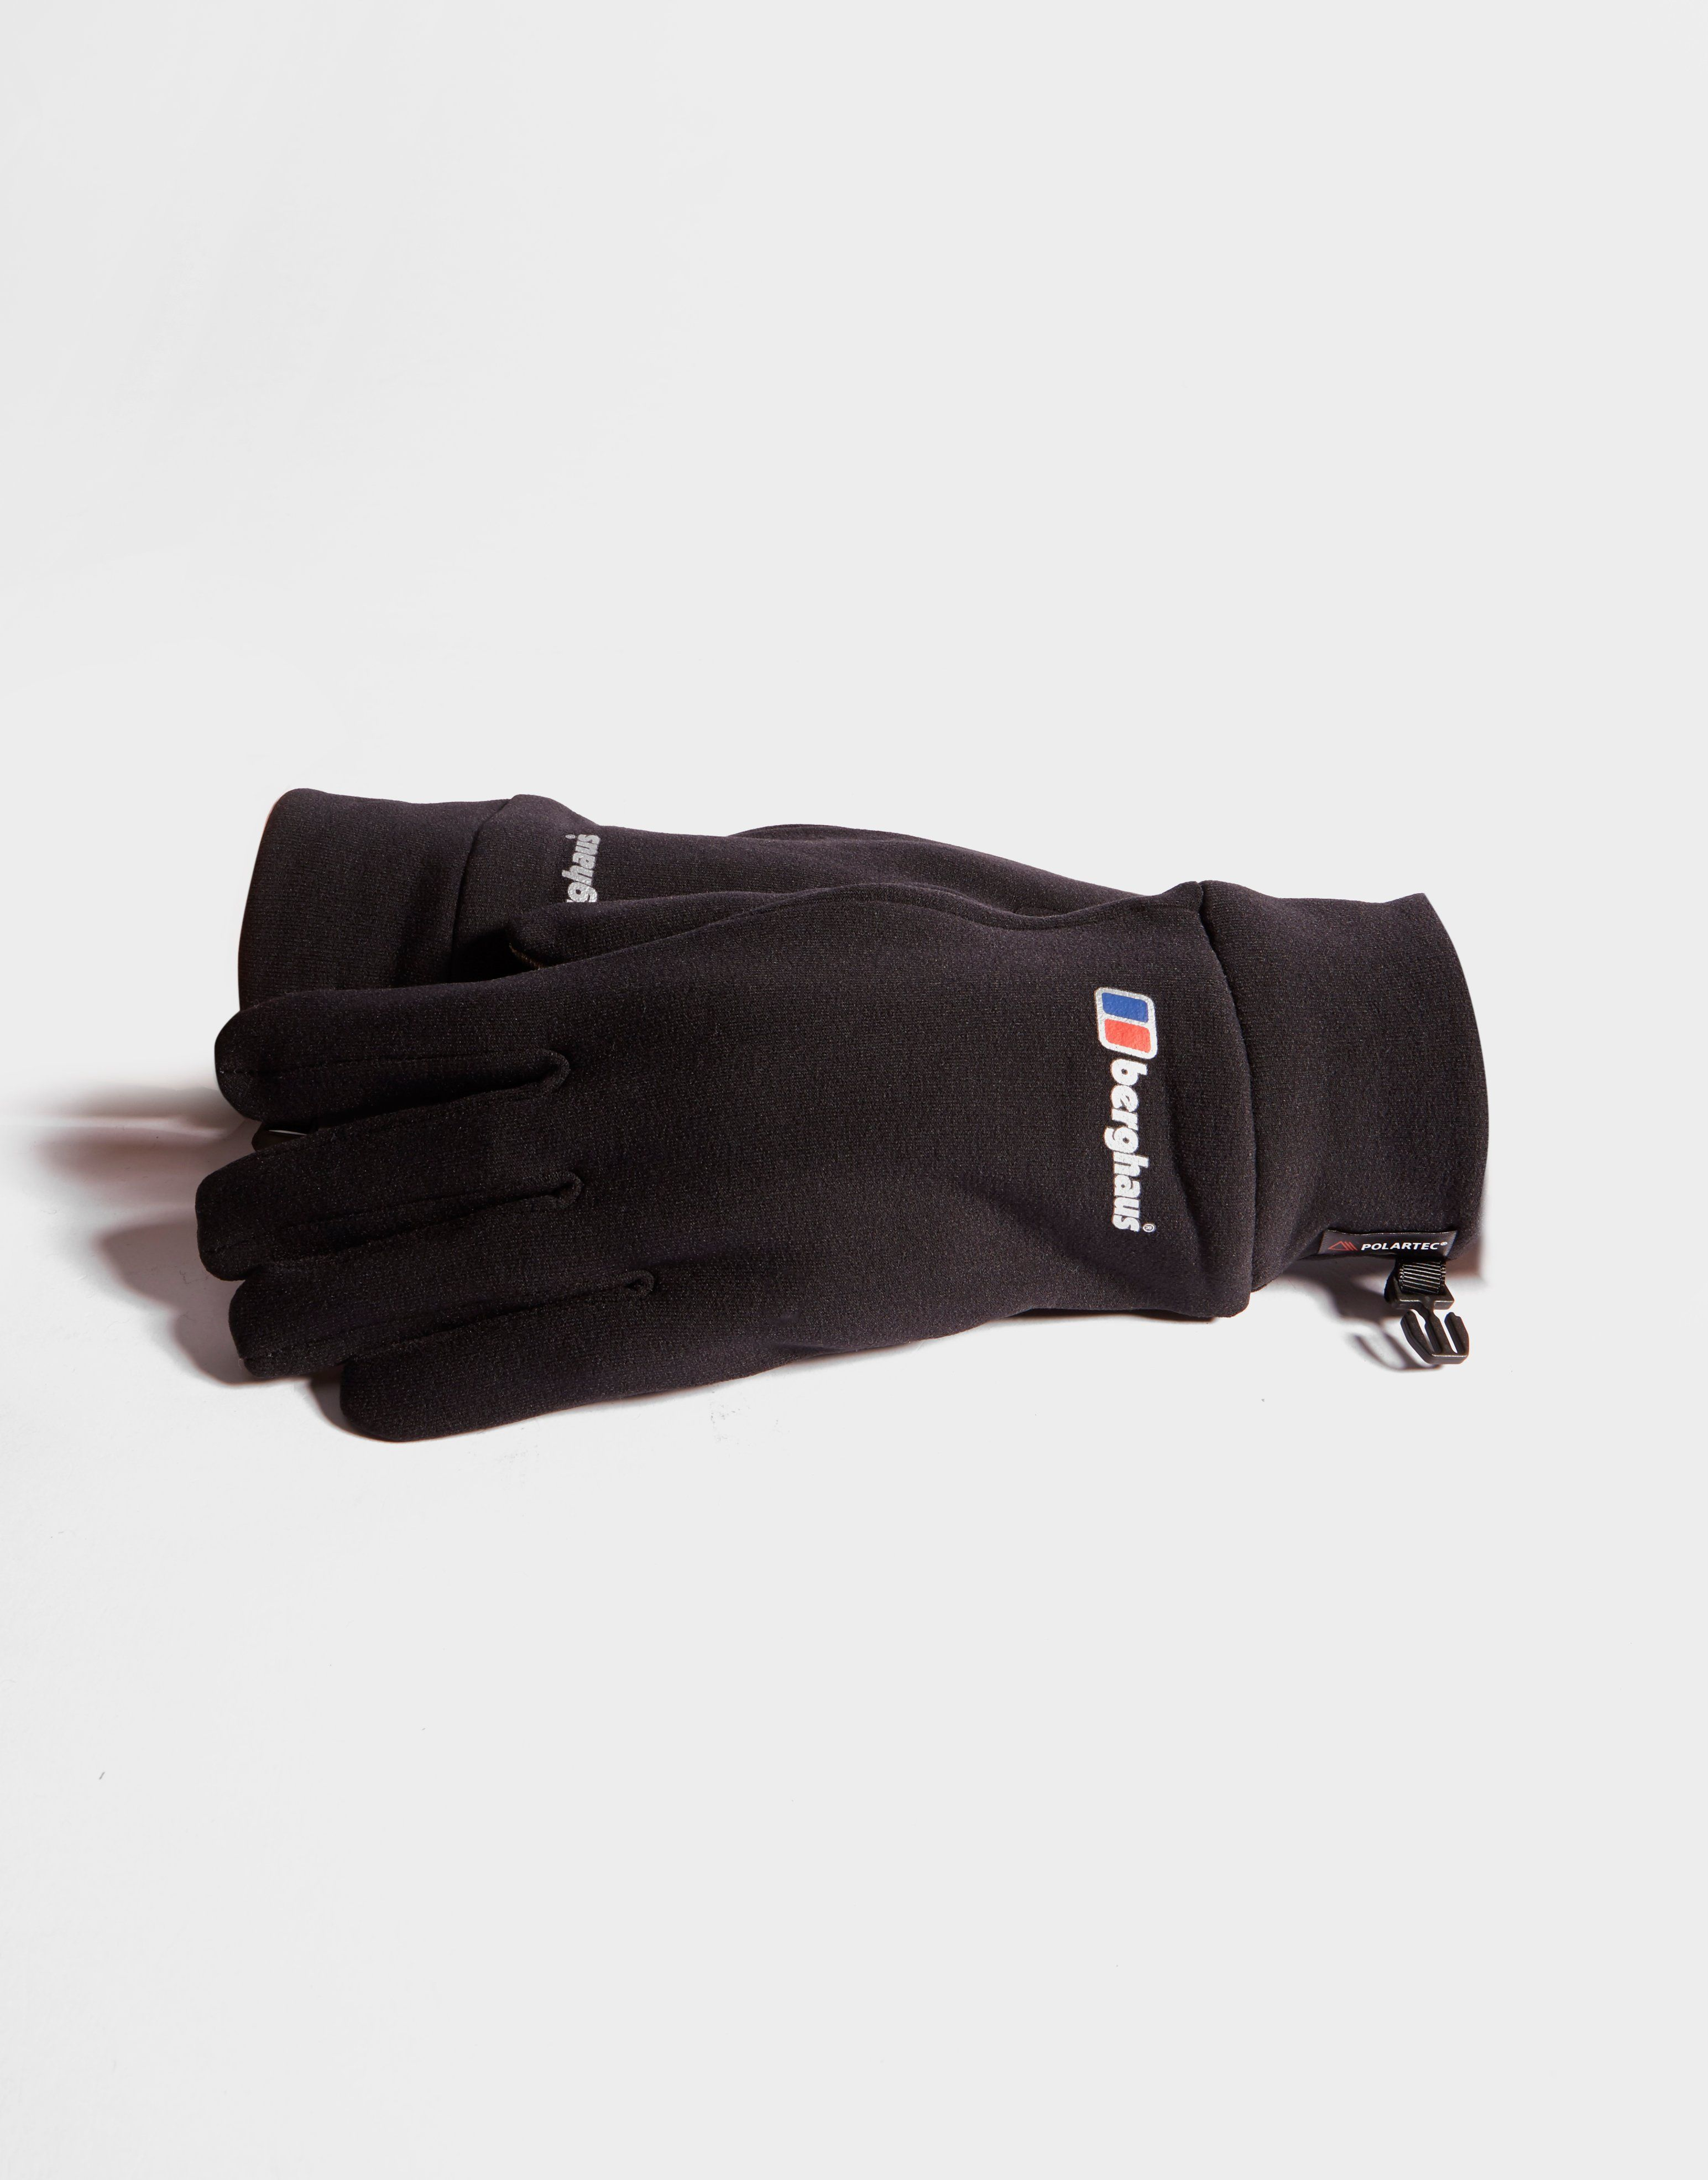 Mens gloves sports direct - Berghaus Touch Screen Gloves